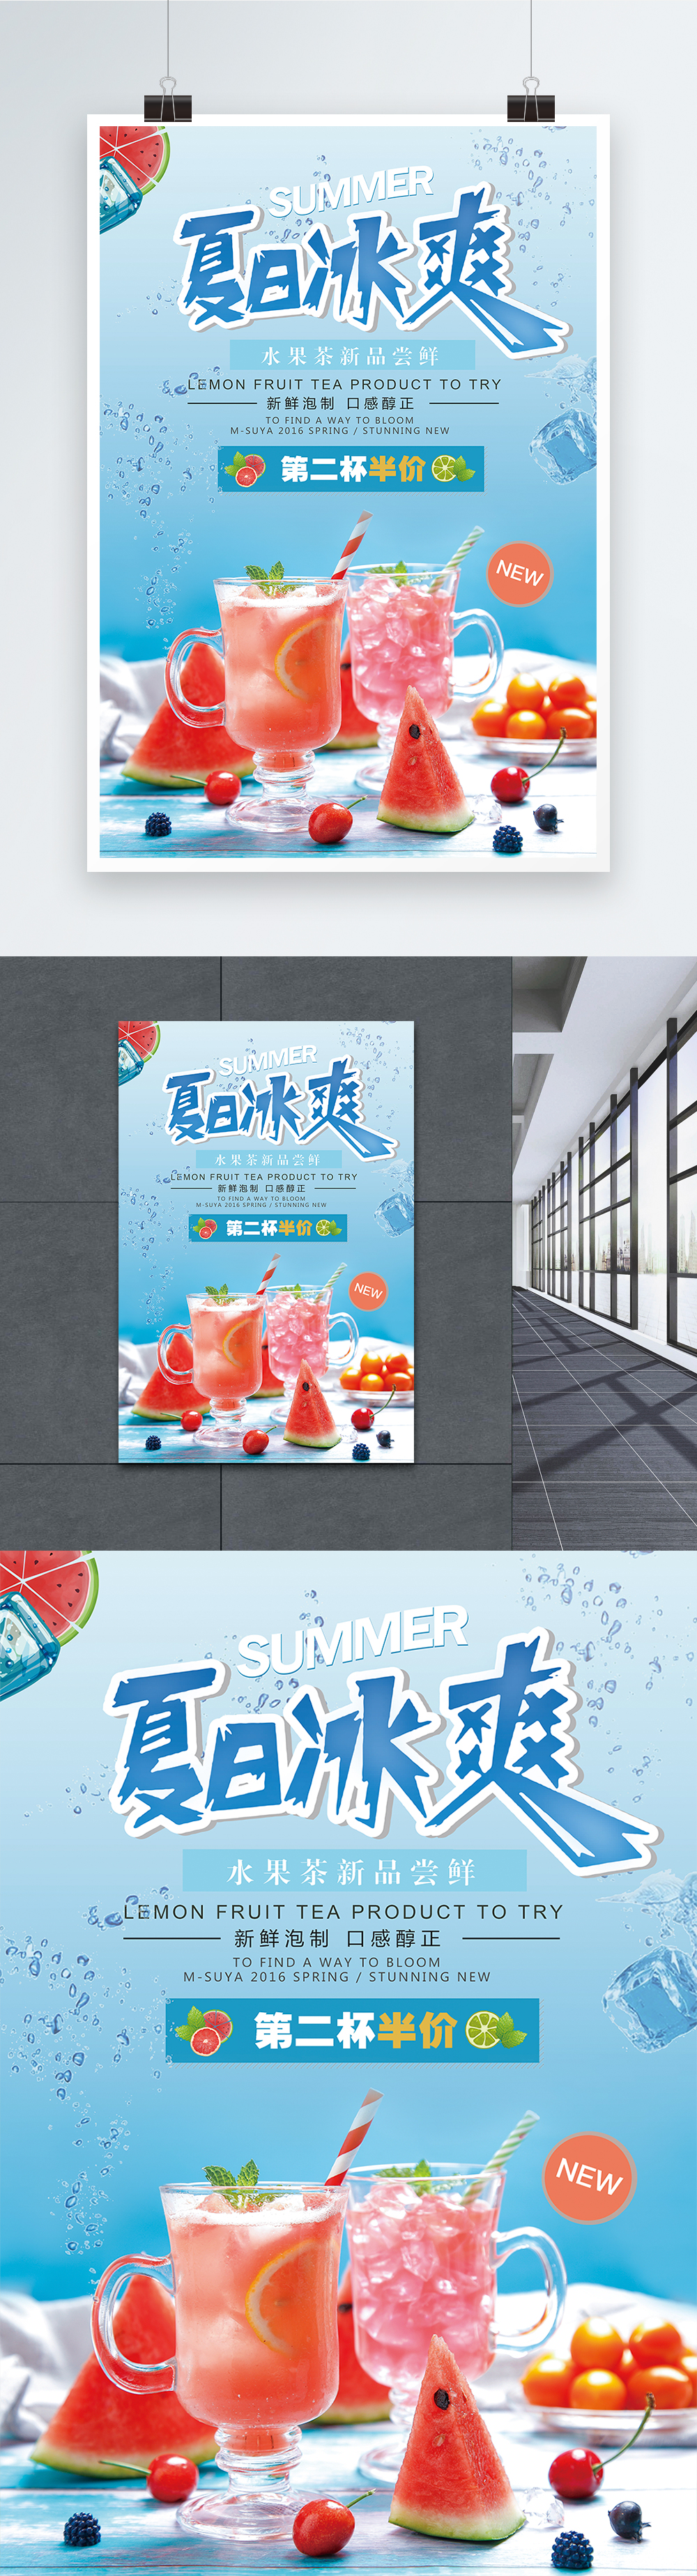 Summer drinks posters template image_picture free download ...